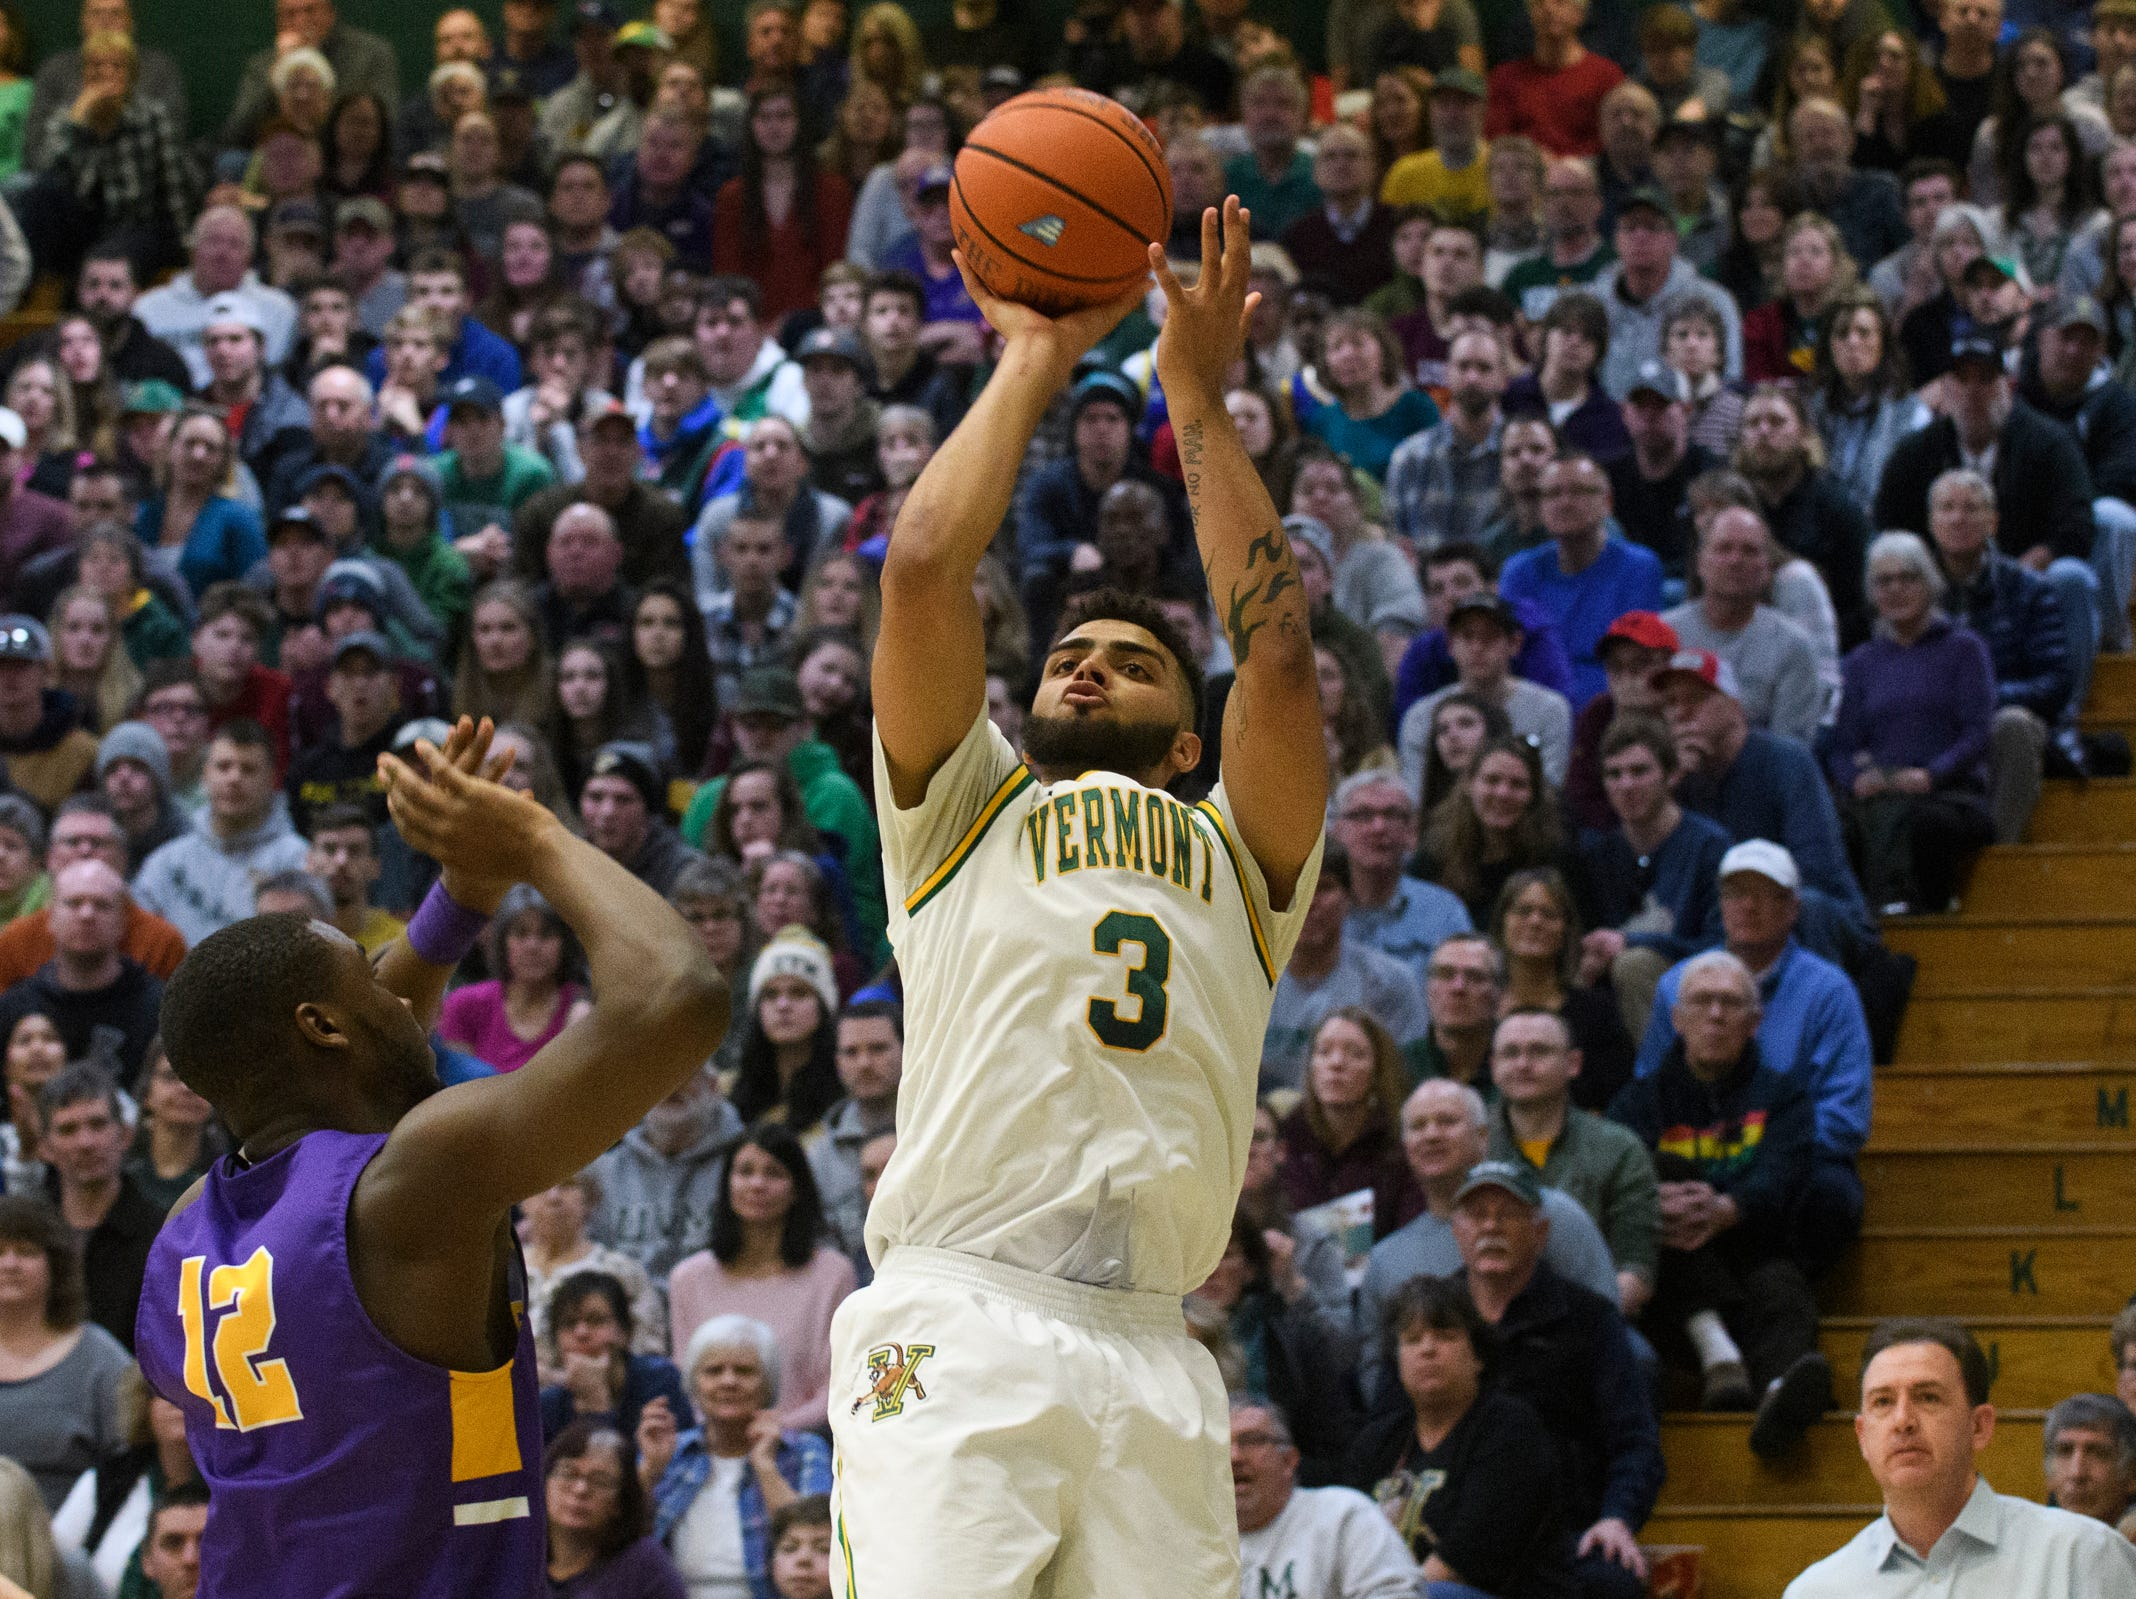 Vermont forward Anthony Lamb (3) shoots the ball over Albany's Devonte Campbell (12) during the men's basketball game between the Albany Great Danes and the Vermont Catamounts at Patrick Gym on Saturday February 9, 2019 in Burlington, Vermont.